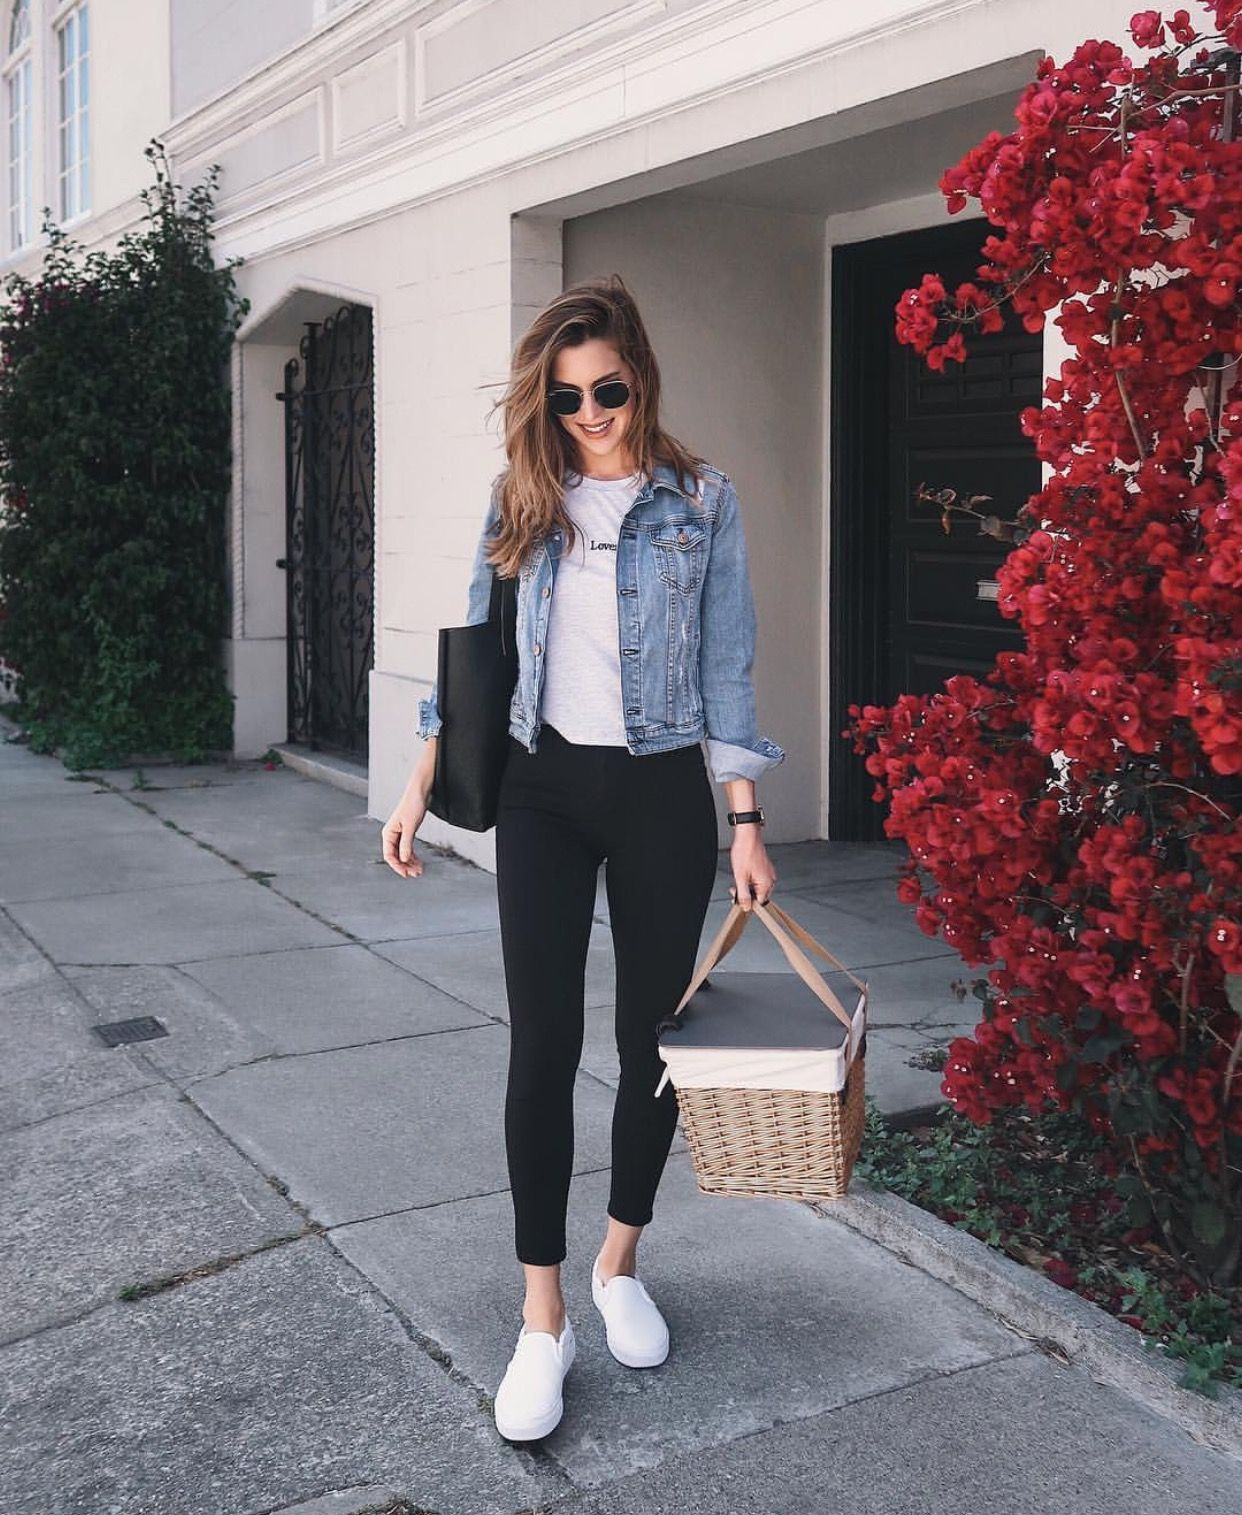 Fashion style Picnic stylish outfits for woman